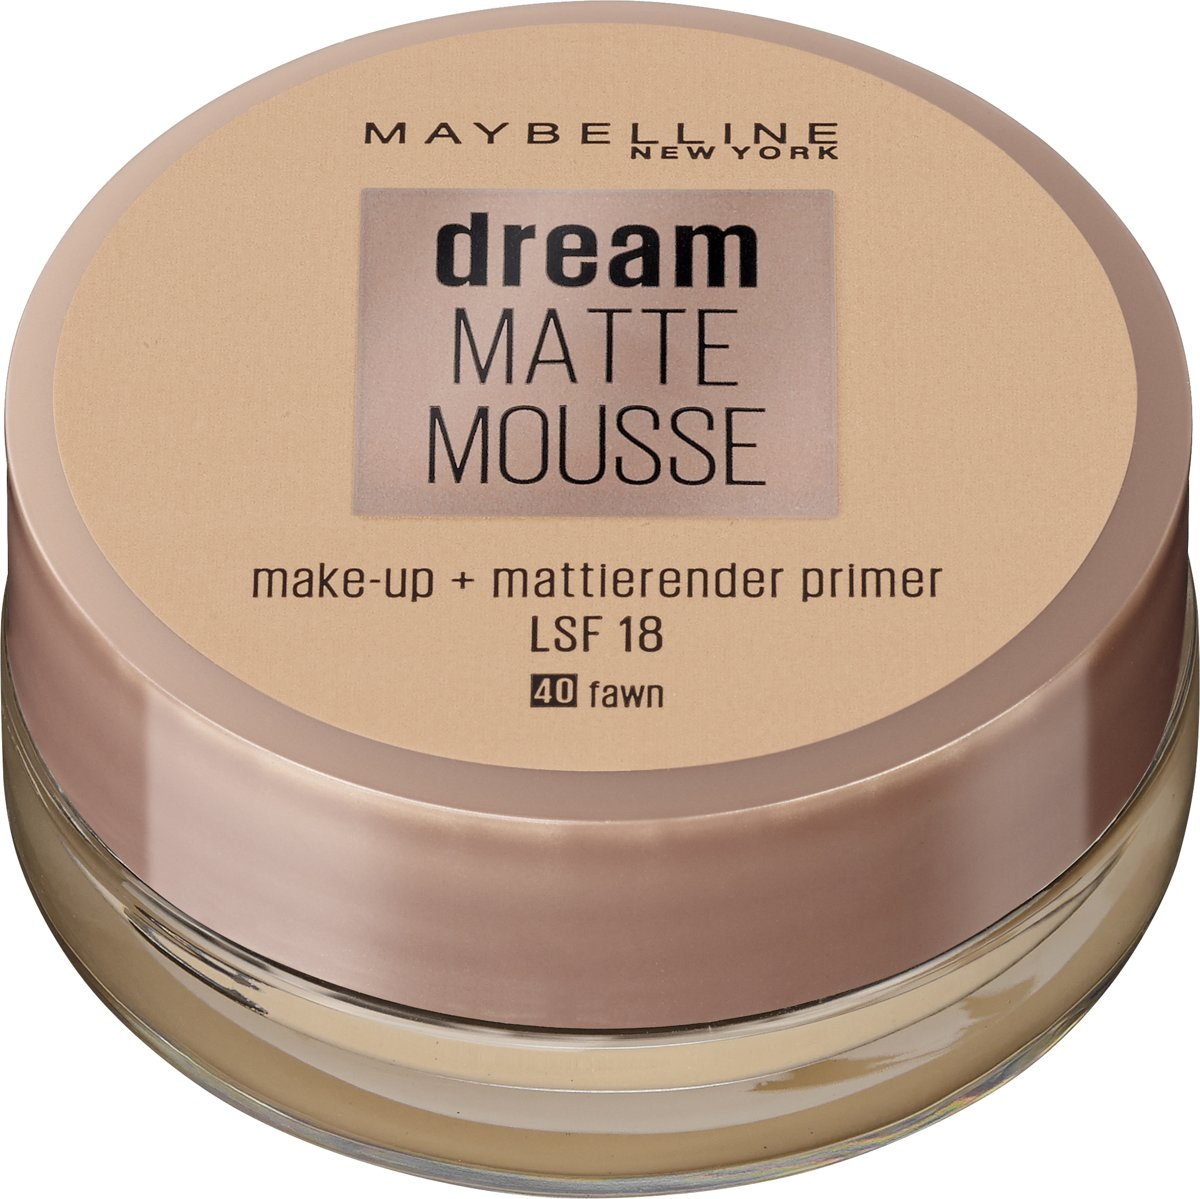 Maybelline Dream Matte Mousse - 040 Fawn - Foundation